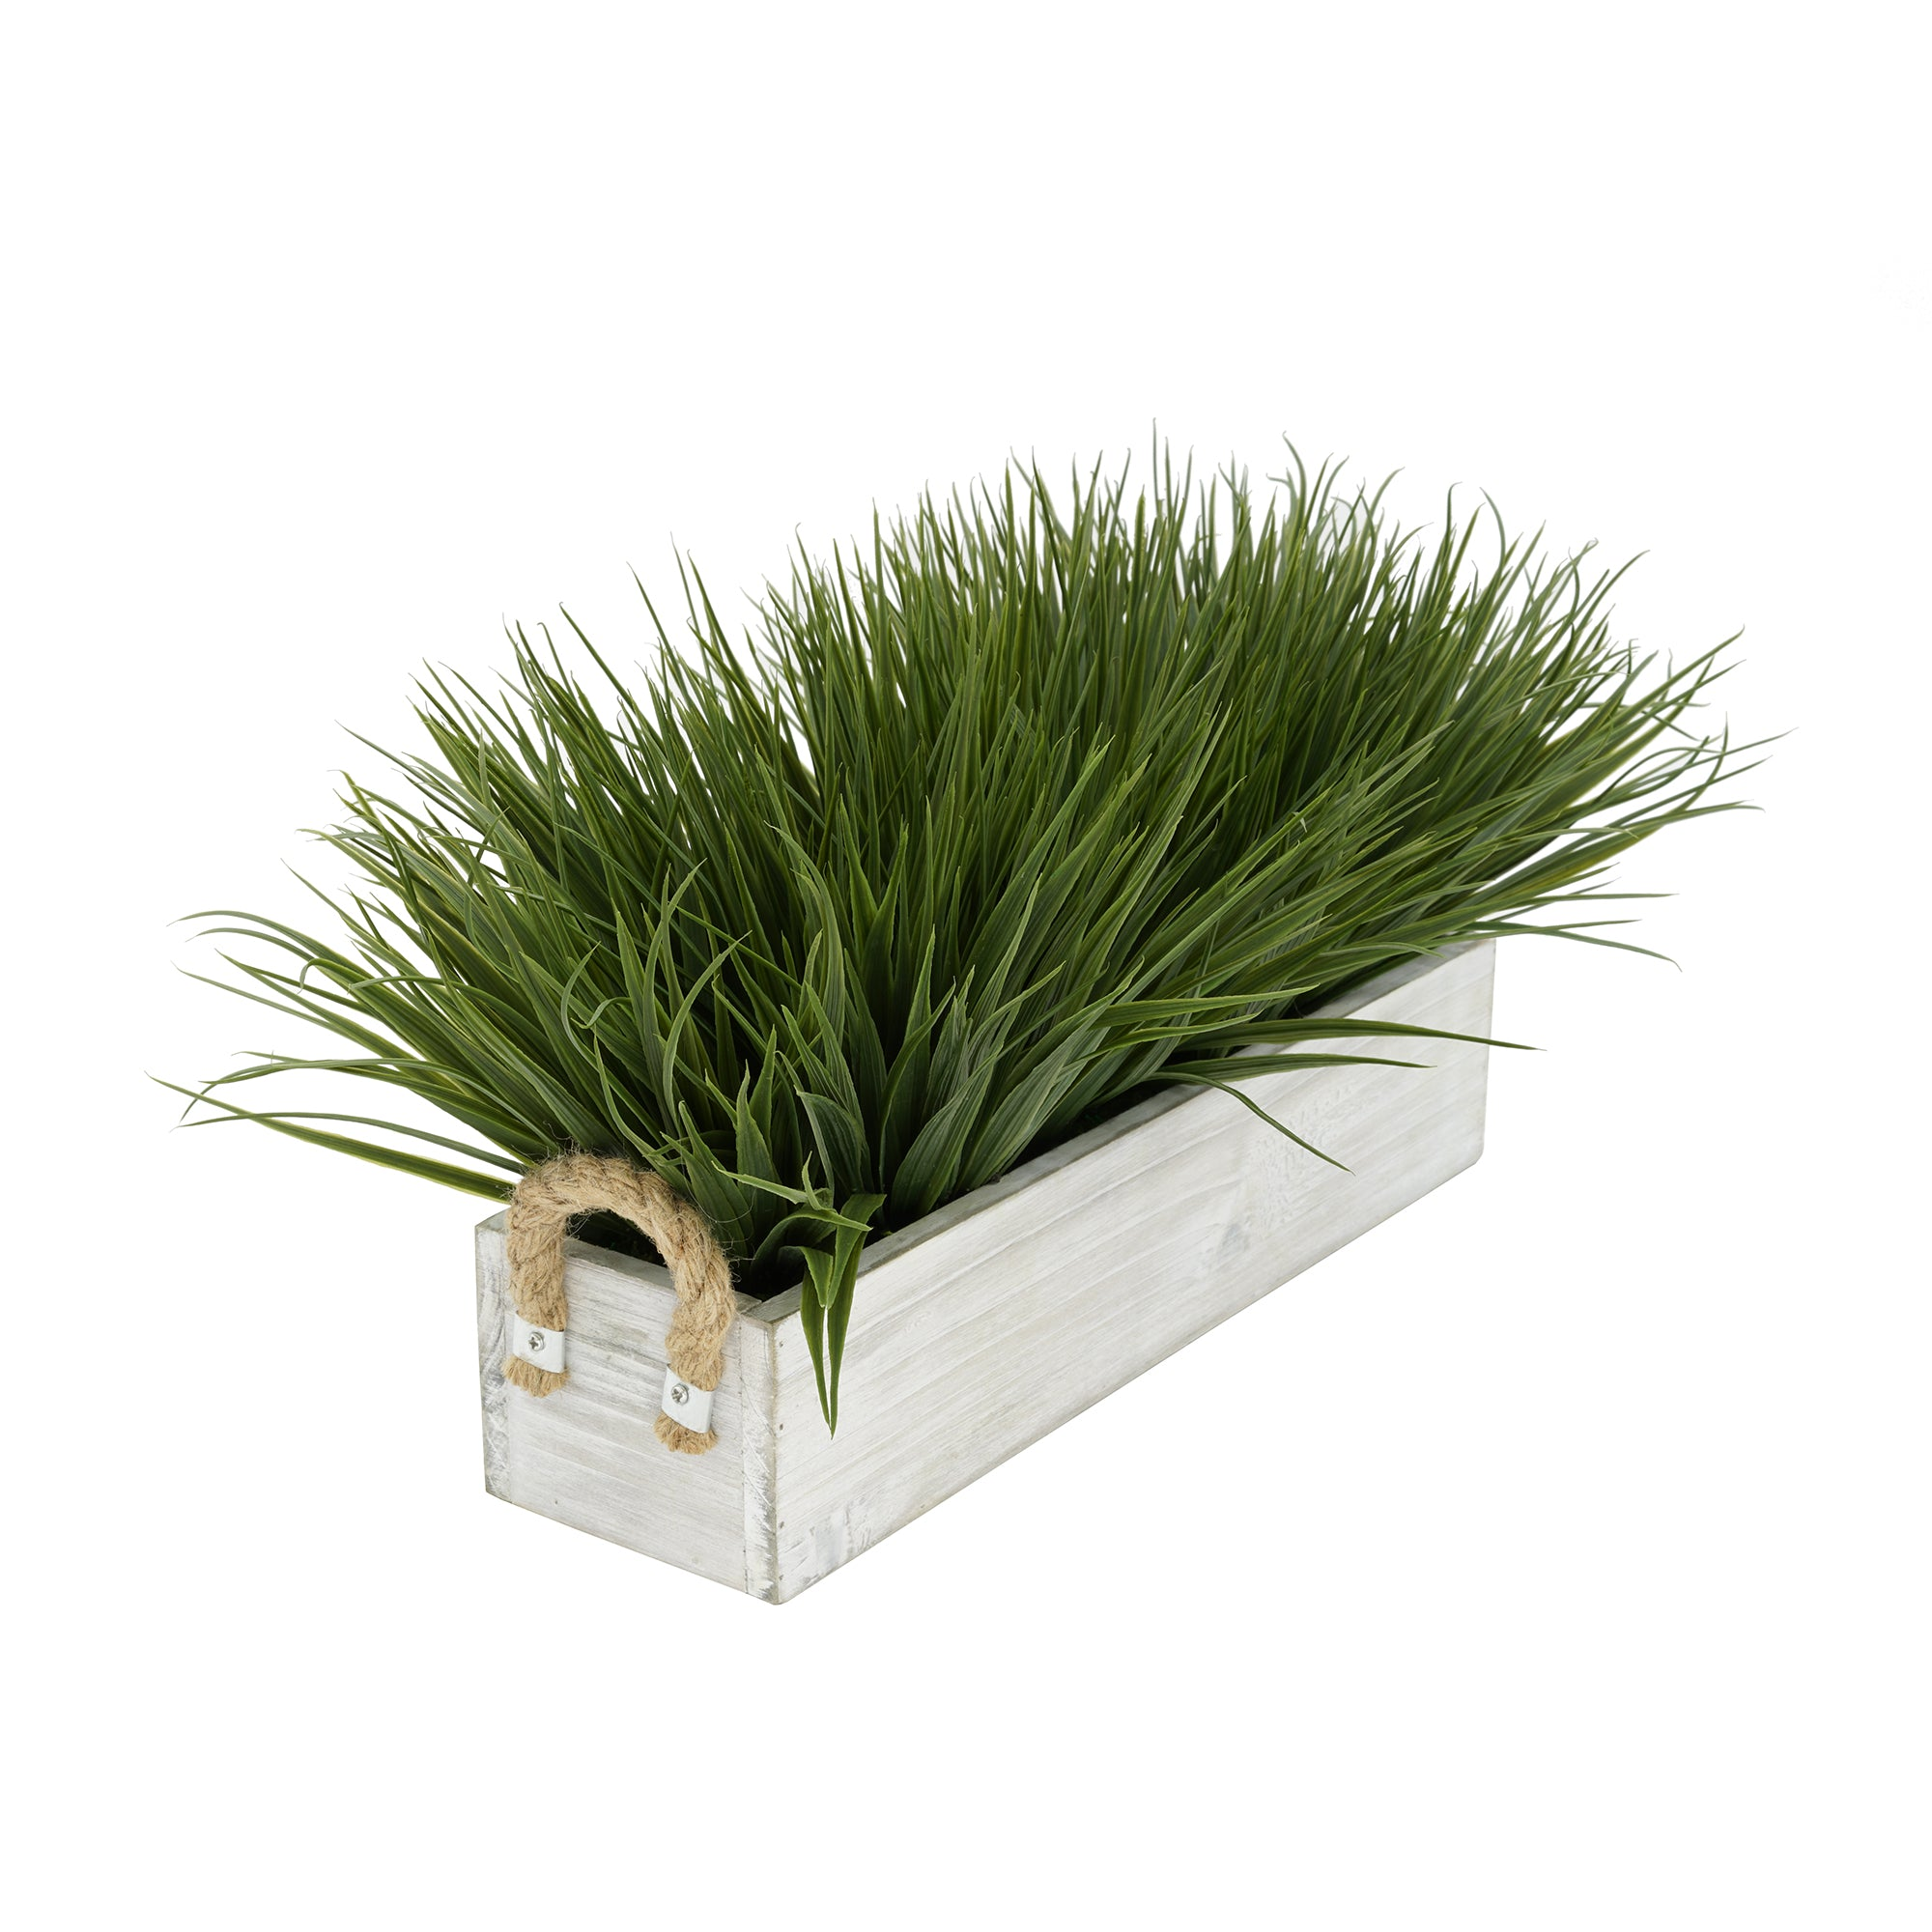 "Artificial Green Farm Grass in 15"" Washed Wood Trough with Rope Handles"